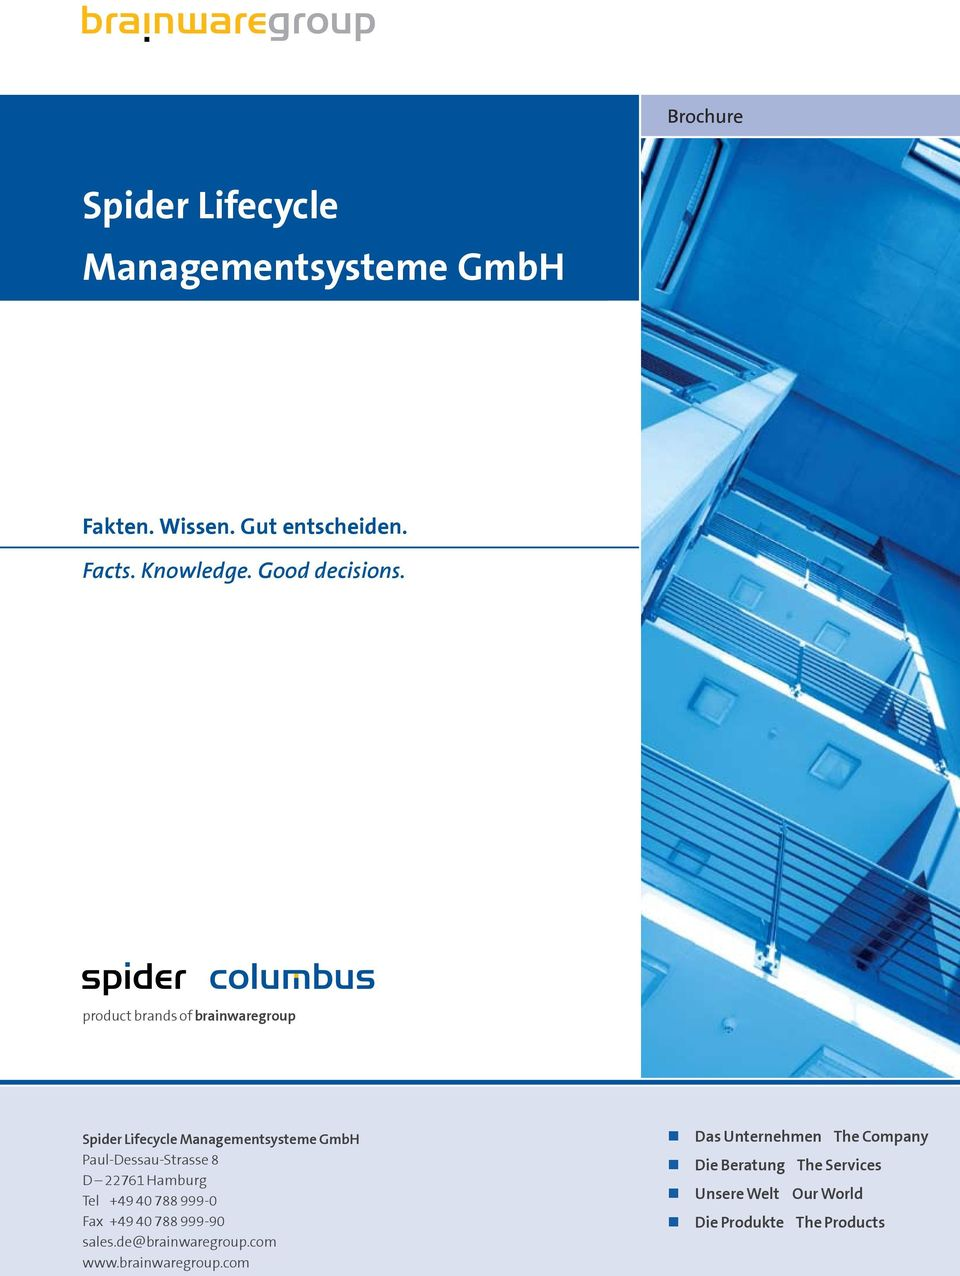 product brands of brainwaregroup Spider Lifecycle Managementsysteme GmbH Paul-Dessau-Strasse 8 D 22761